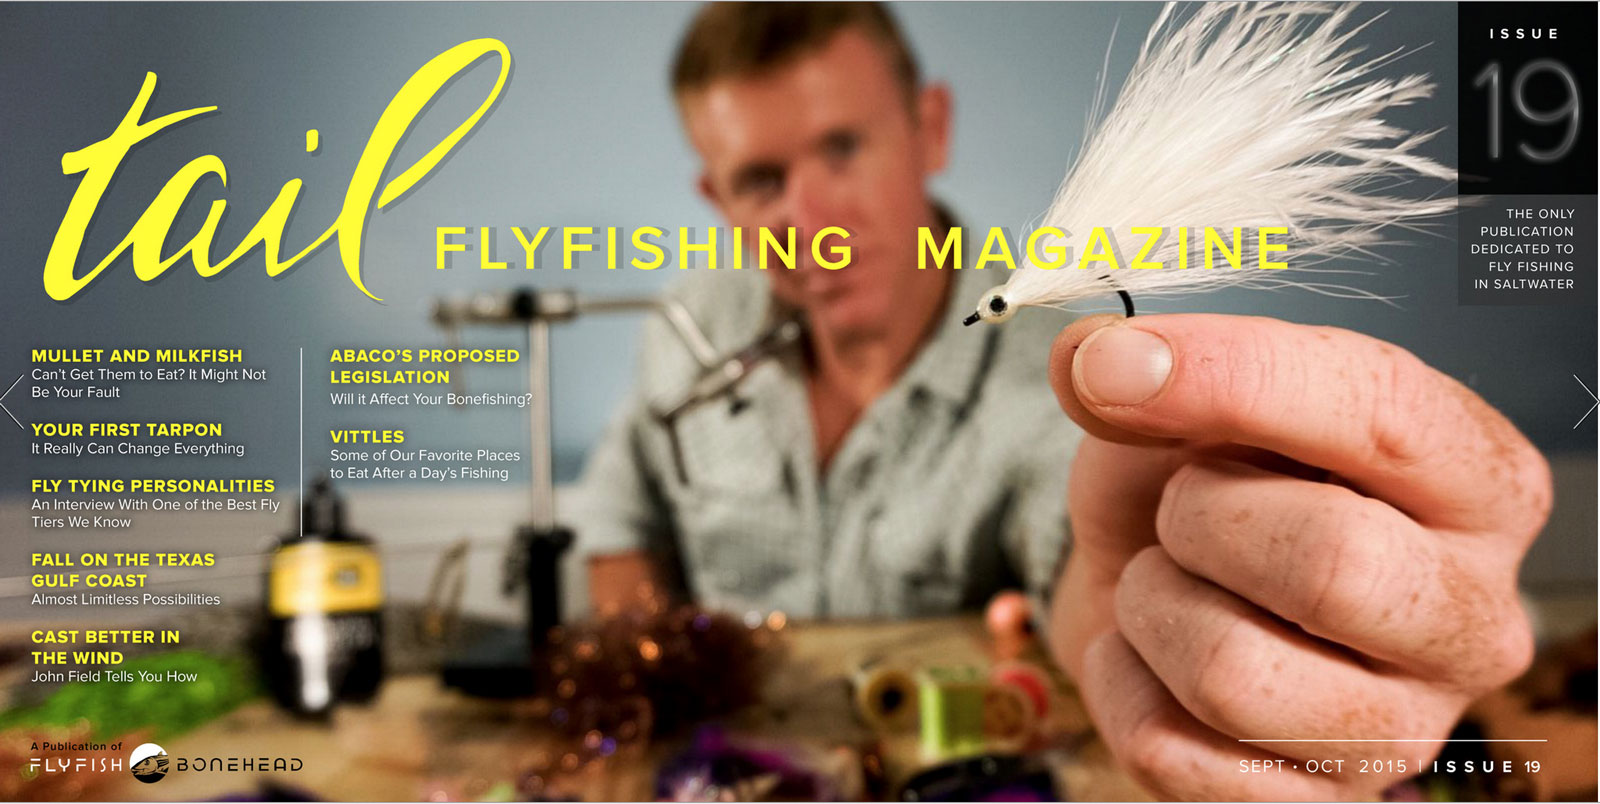 Tail Fly Fishing Magazine is the only fly fishing magazine dedicated to fly fishing in saltwater